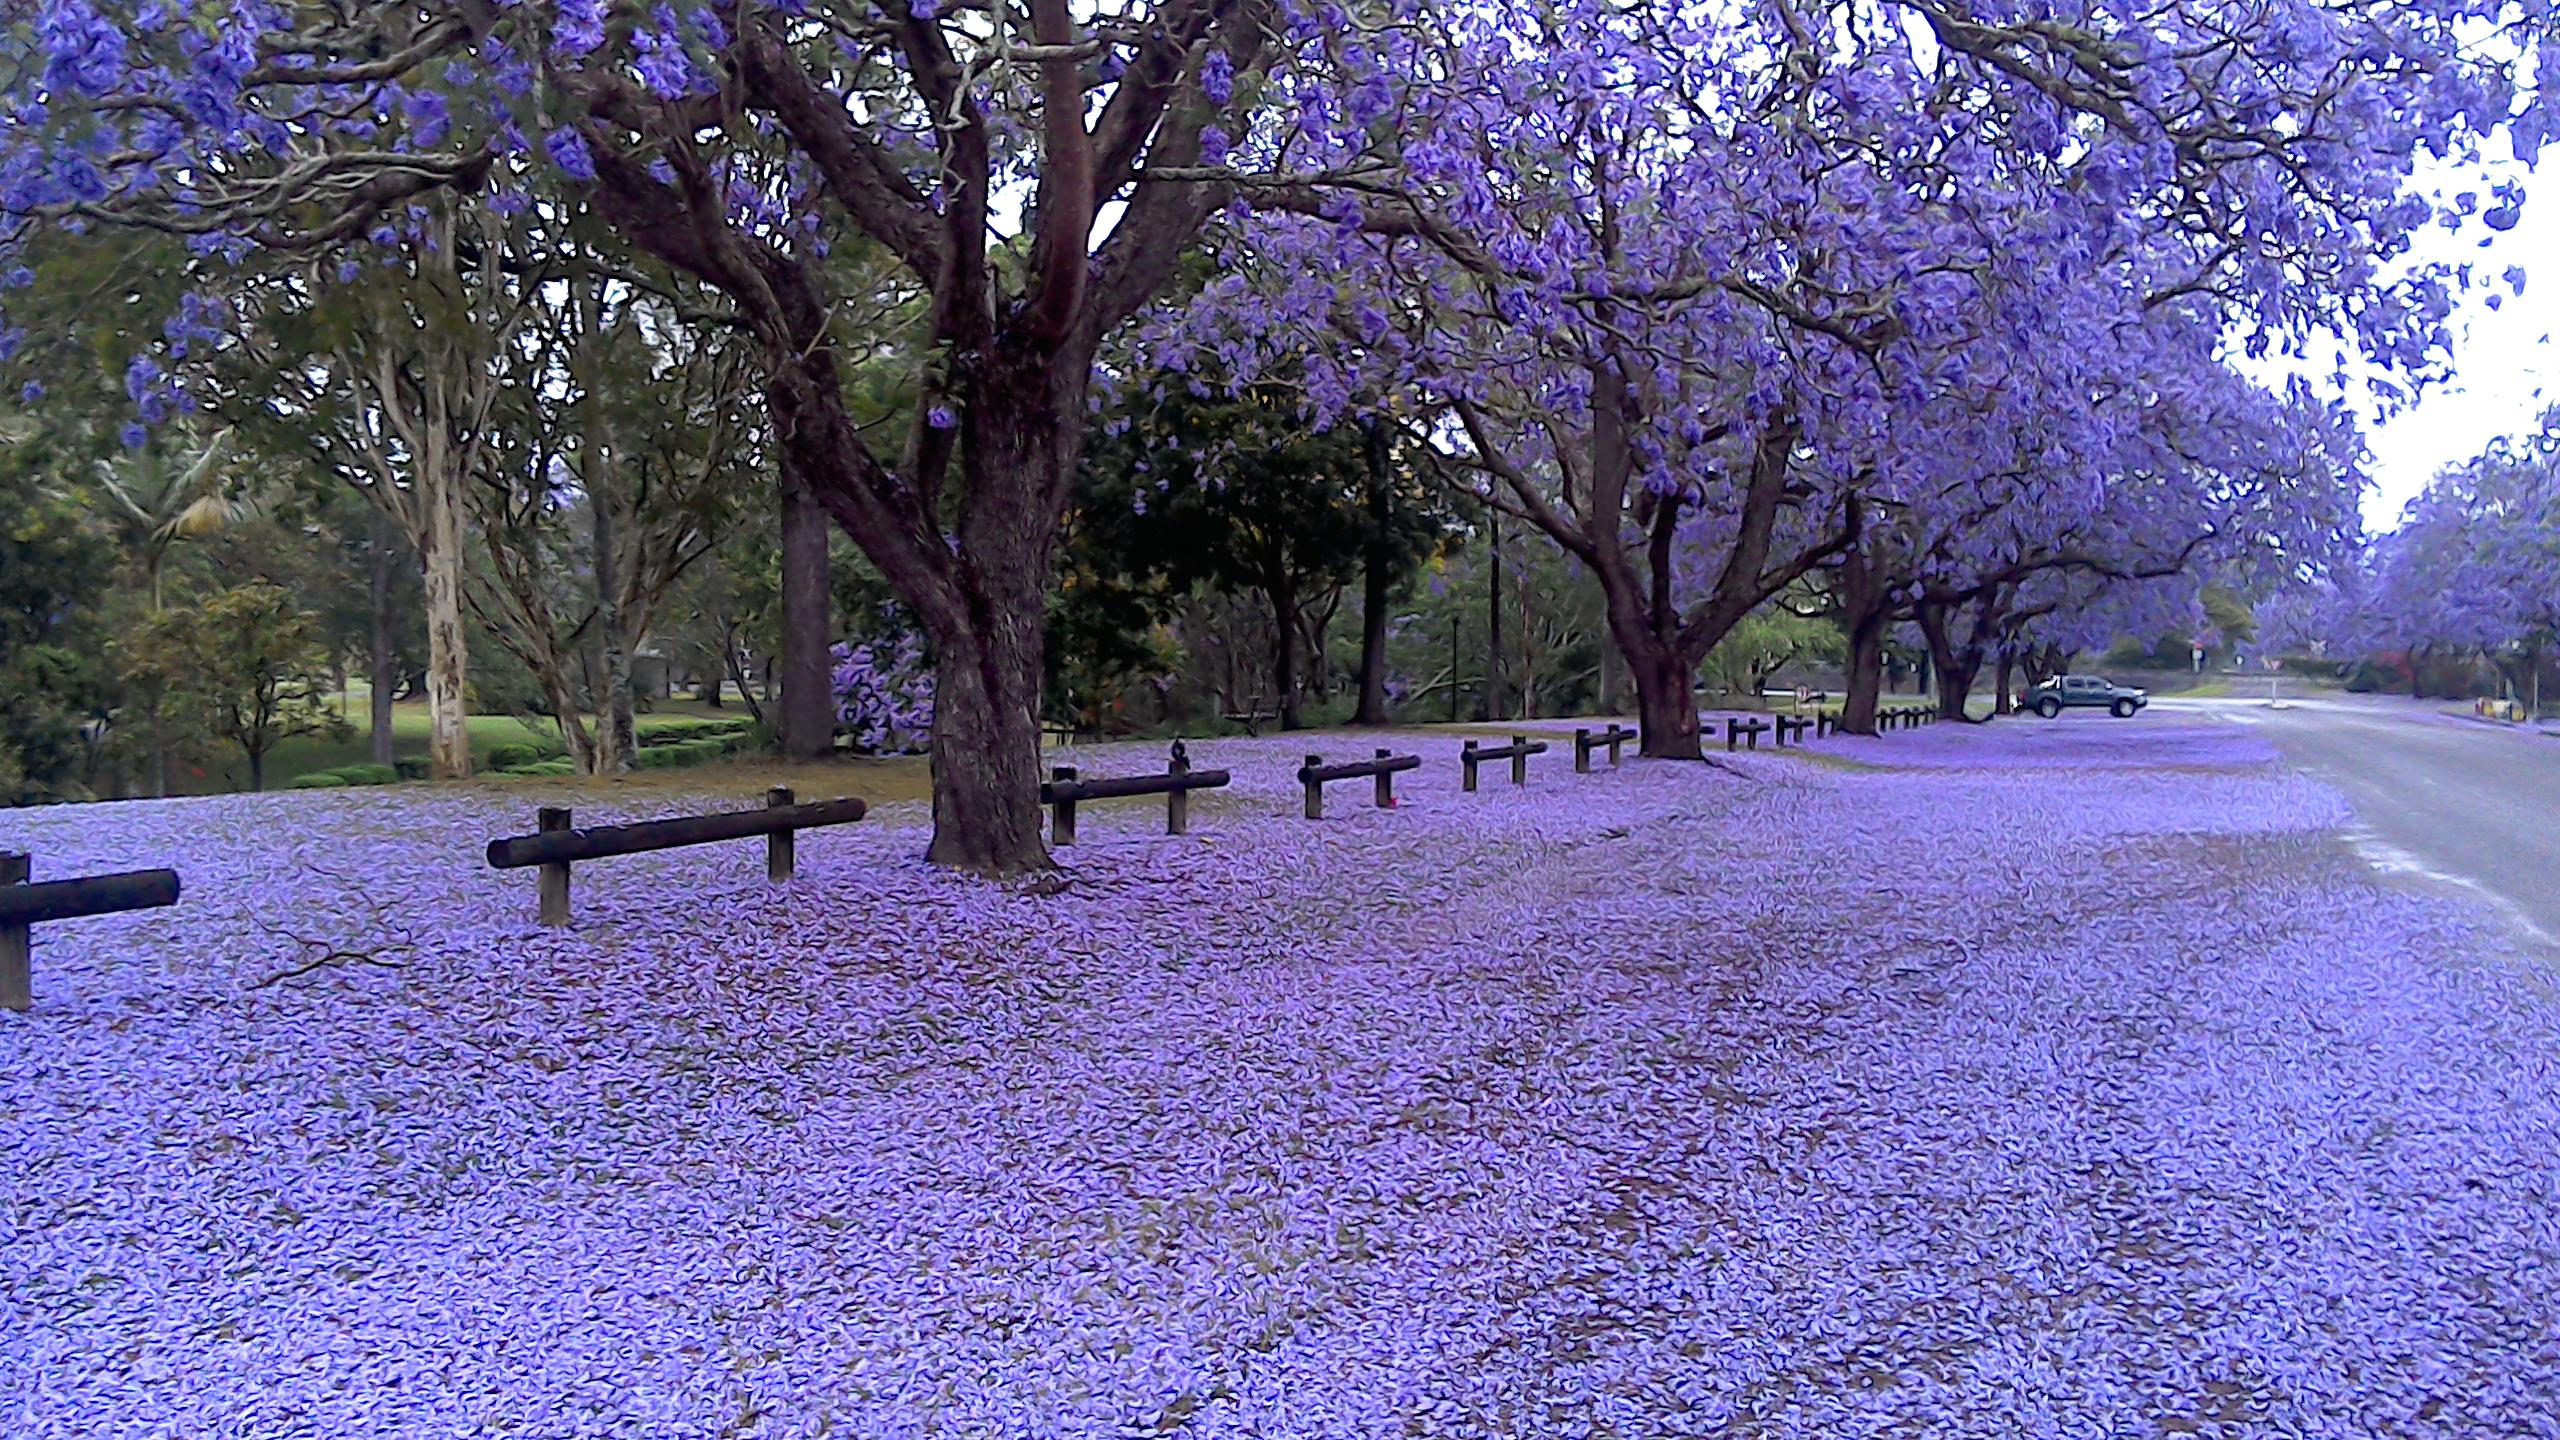 jacaranda org frasca thesis Postcolonialism, this thesis investigates the most significant traits of frame's   [accessed 30 july 2014]  later  with antonella anedda, gabriele frasca, tommaso ottonieri, and many   jacaranda is an endemic south american tree and is very frequently found in  australia.